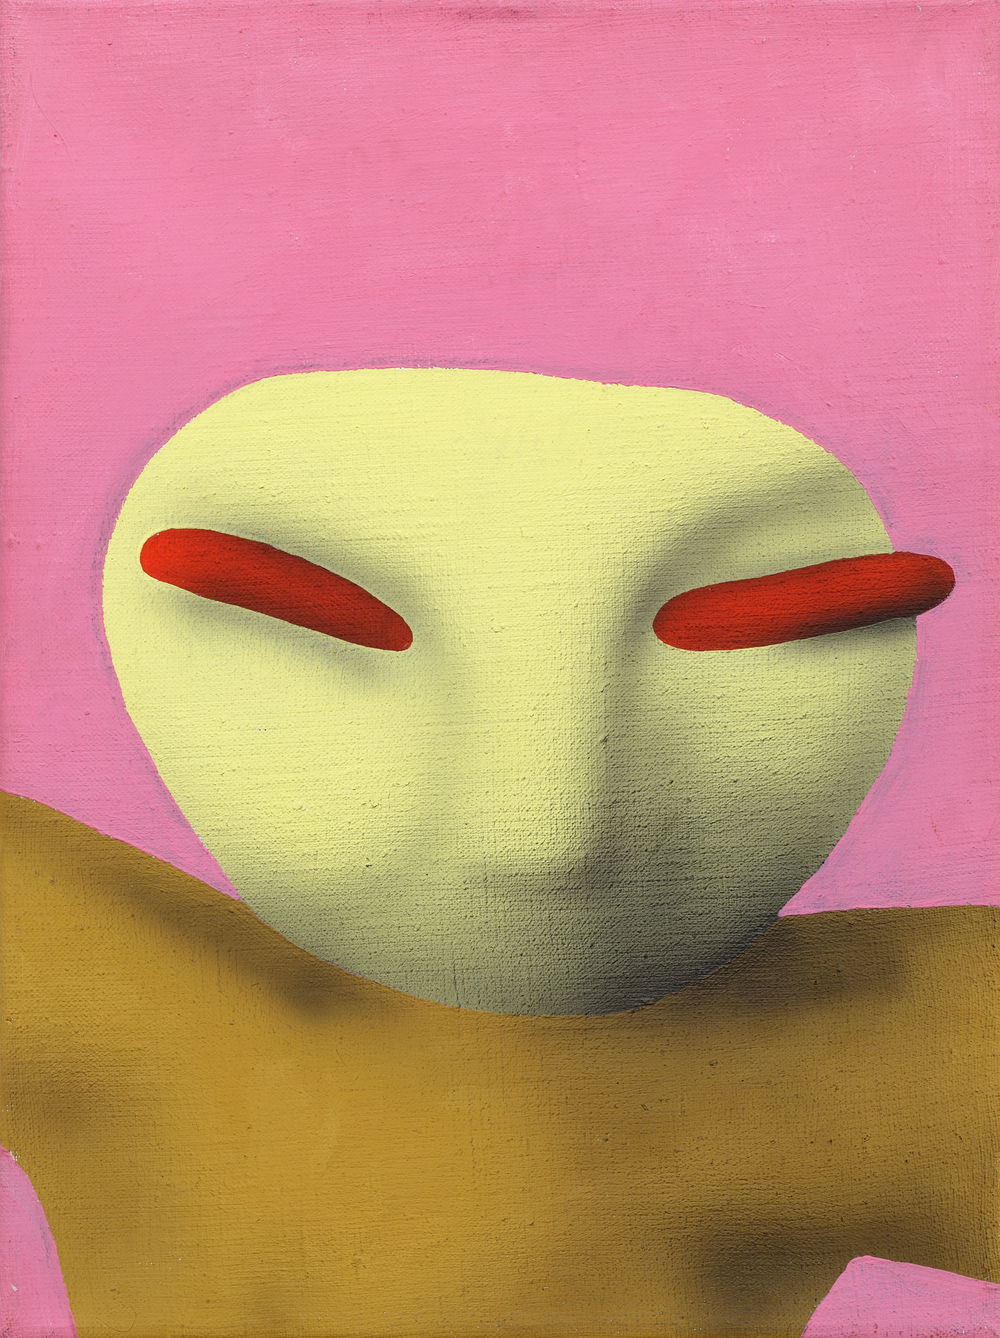 Yakuza, 2004, acrylic on canvas, 40 x 30 cm